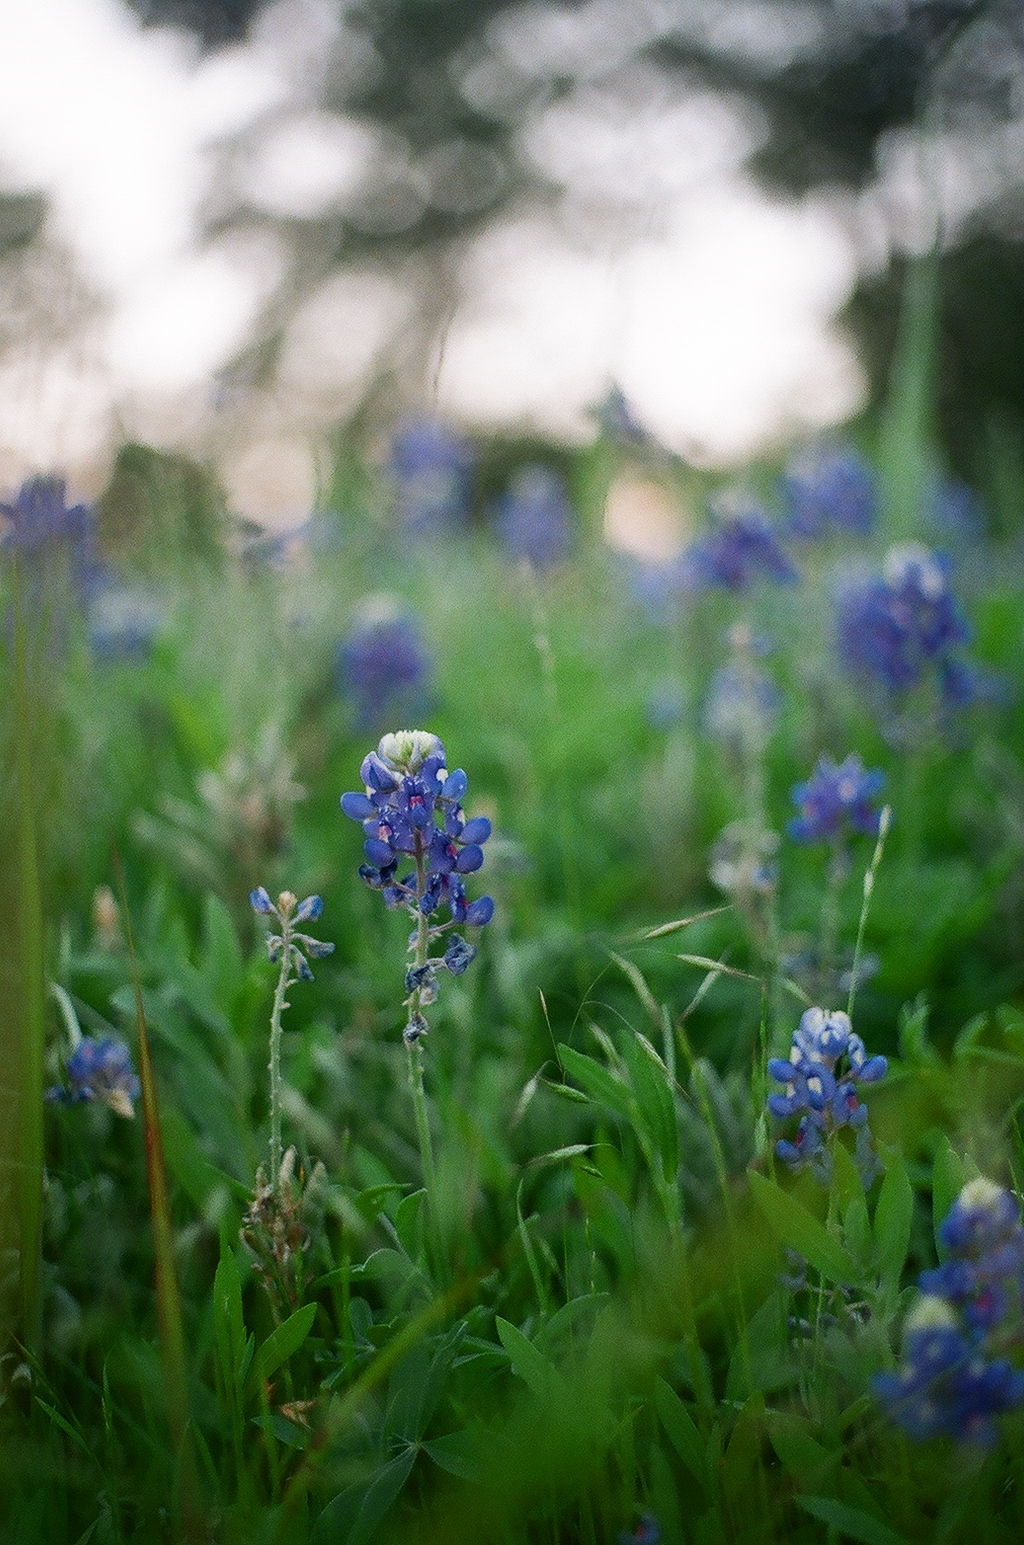 Bluebonnet  -AKA Texas Lupine, Buffalo Clover, Wolf Flower  -Scientific Name:  Lupinus Texensis